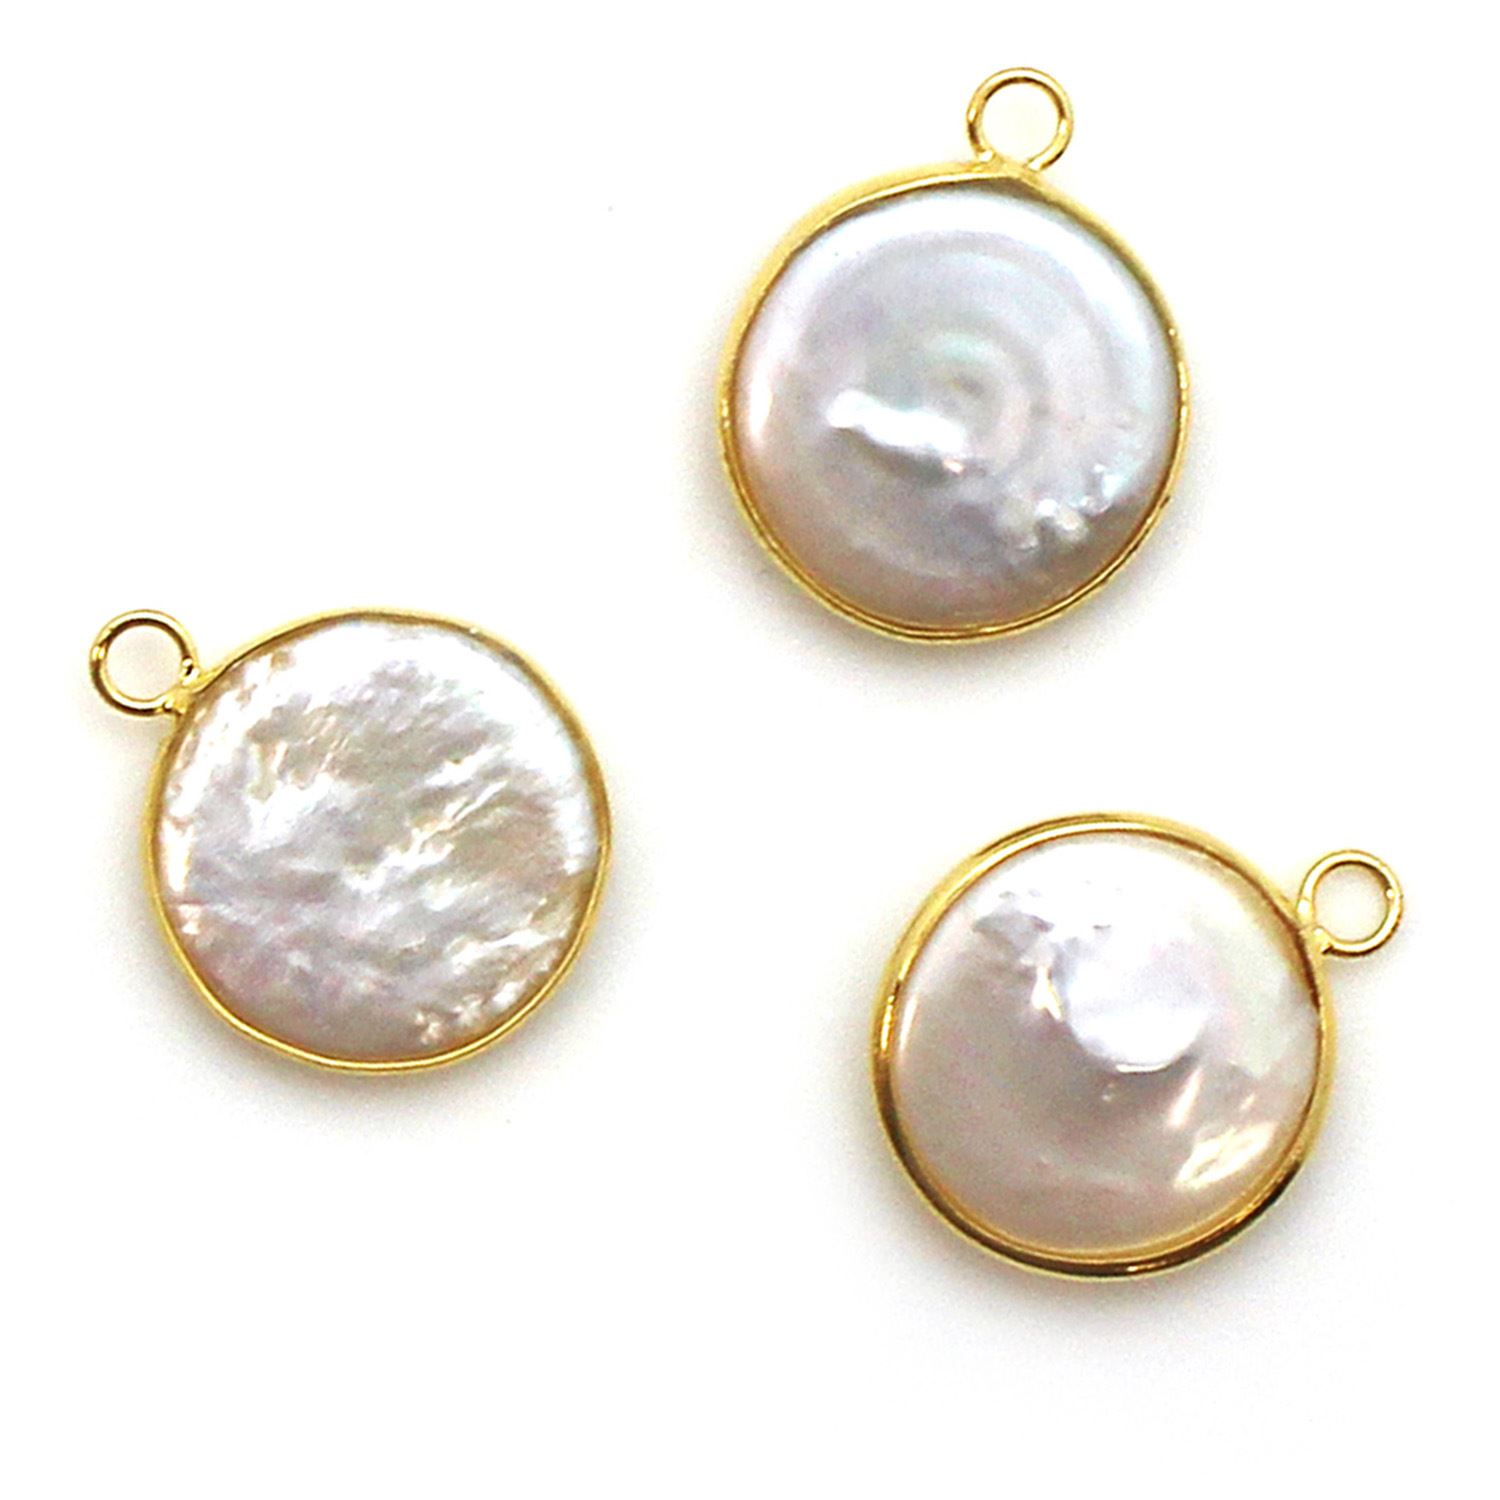 Bezel Gemstone Pendant - Gold plated Bezel- 16.5-17mm Smooth Coin Shape - White Freshwater Pearl Bezel (Sold per 1 piece)